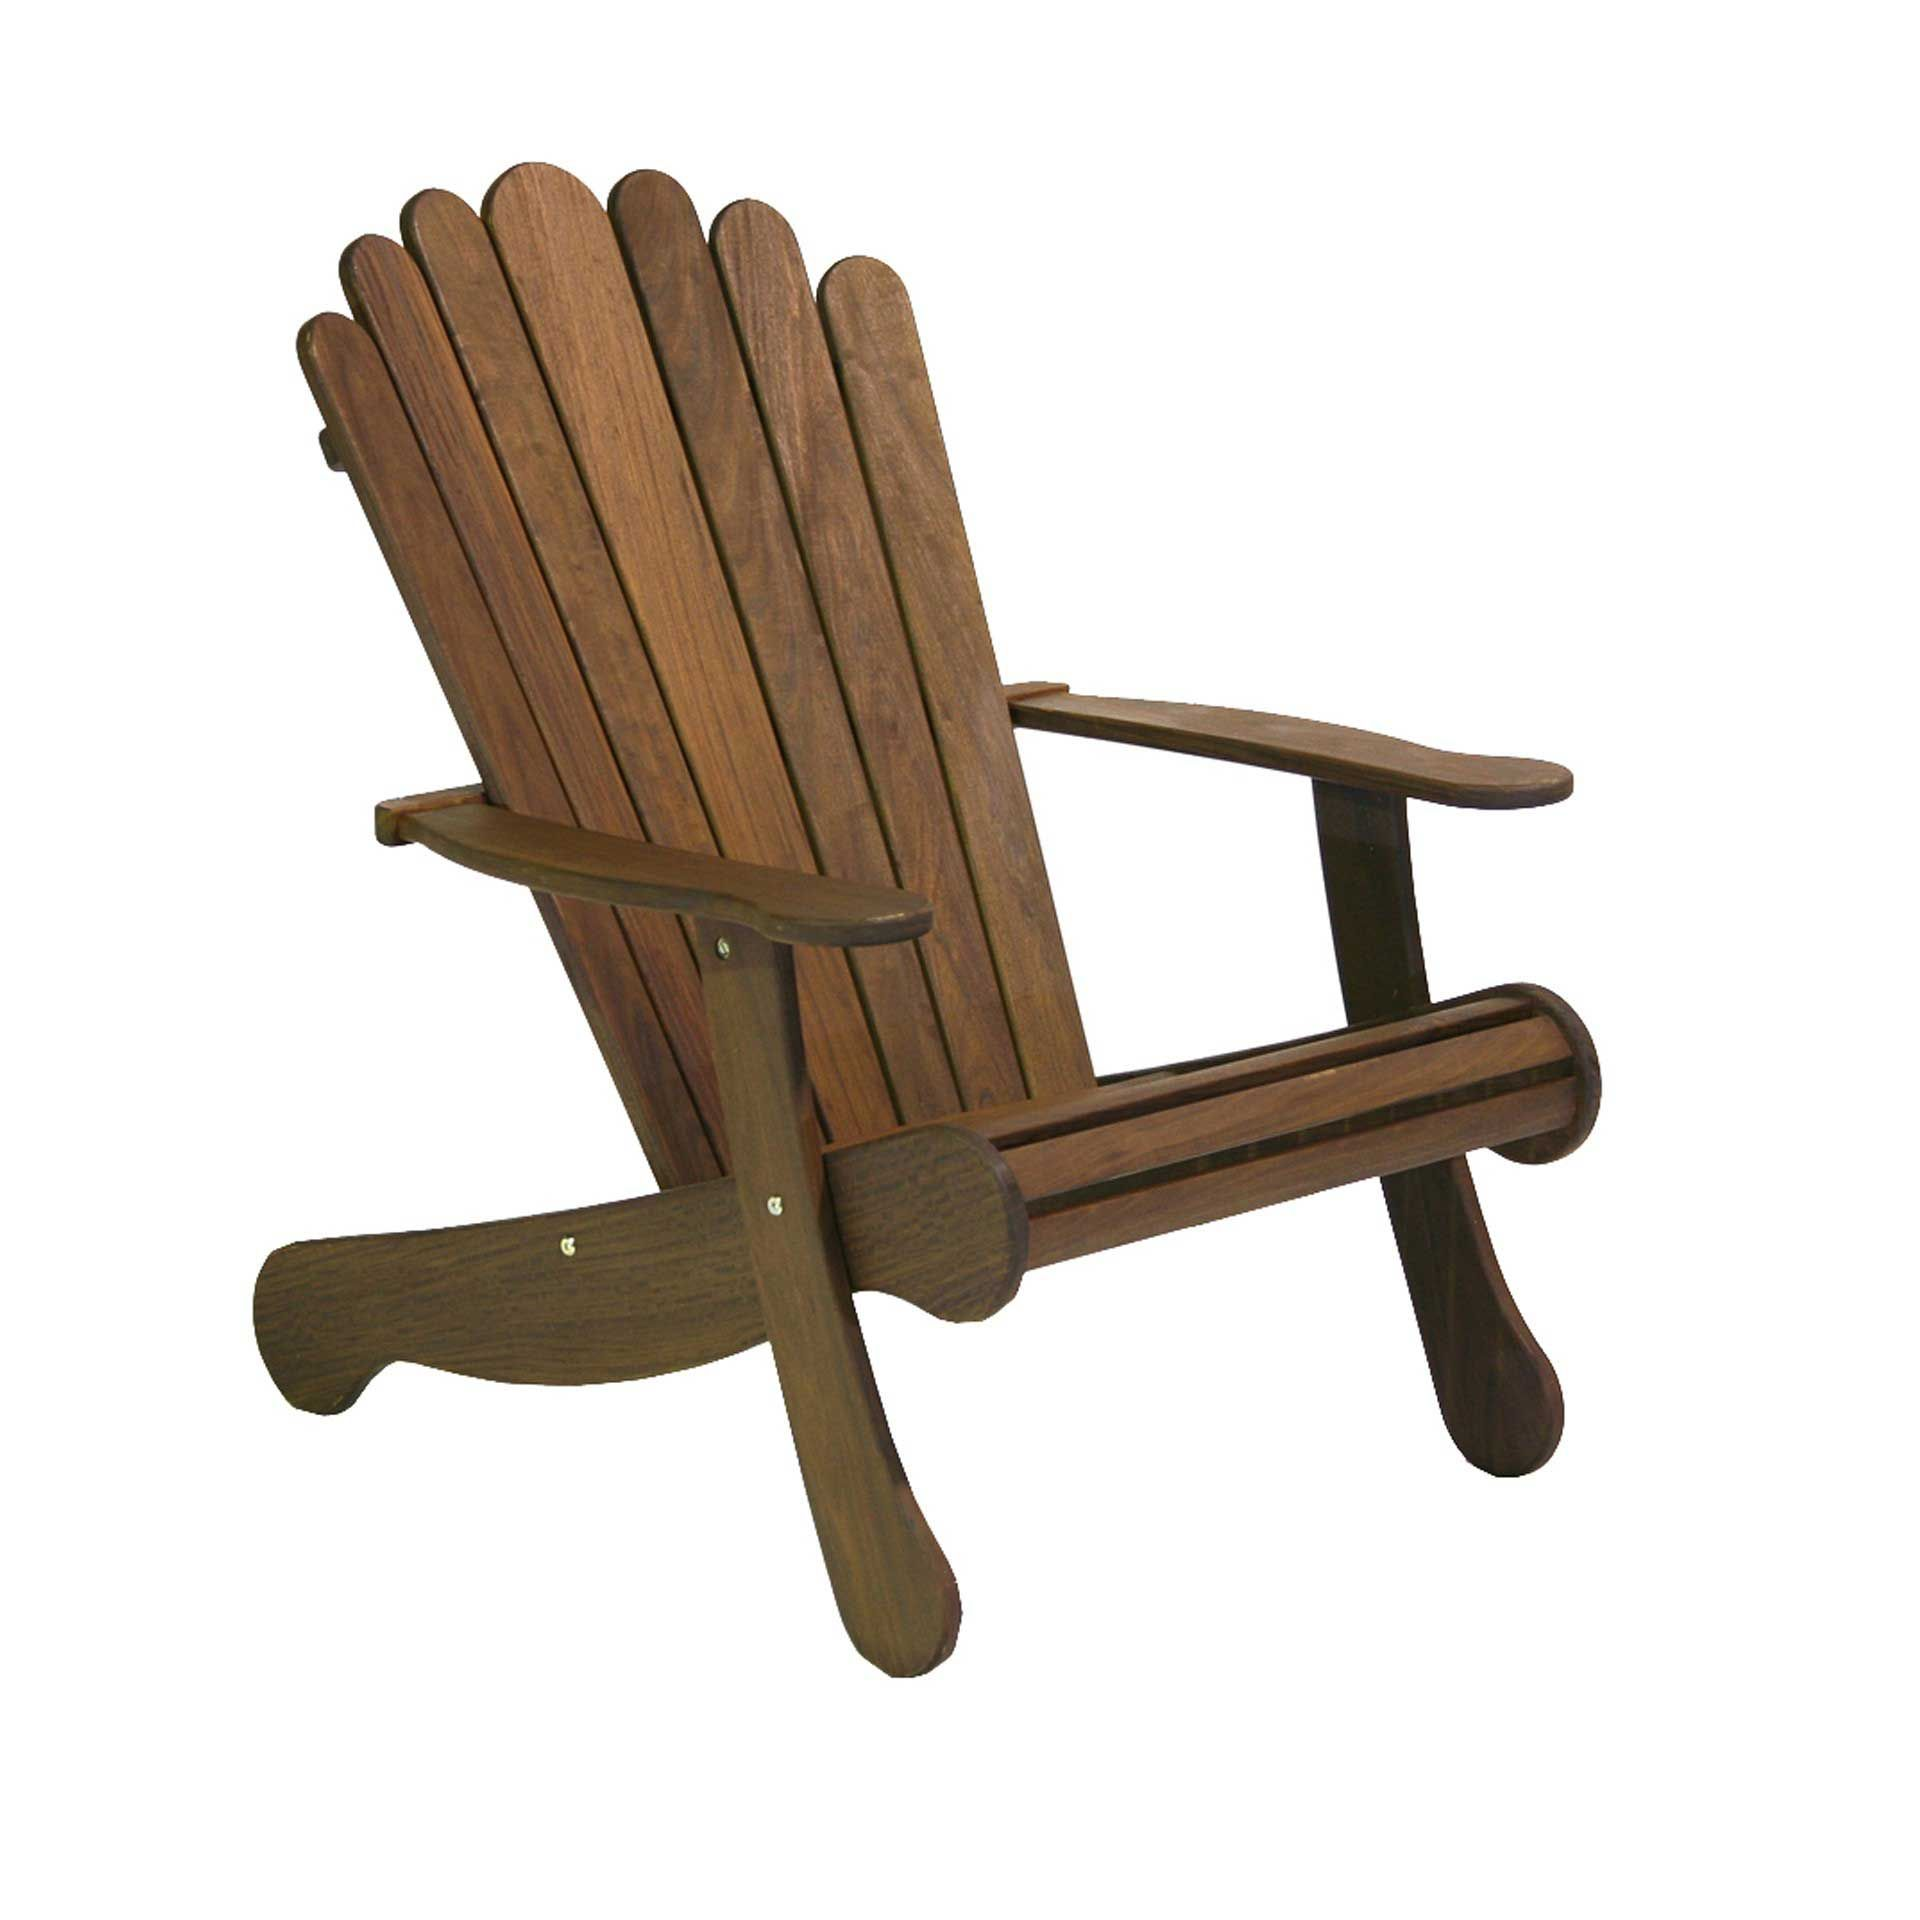 Jensen Leisure Beechworth Ipe 53 Square Dining Table Outdoor Furniture Sunnyland Outdoor Patio Furniture Dallas Fort Worth Tx In 2021 Custom Outdoor Furniture Adirondack Chair Outdoor Furniture